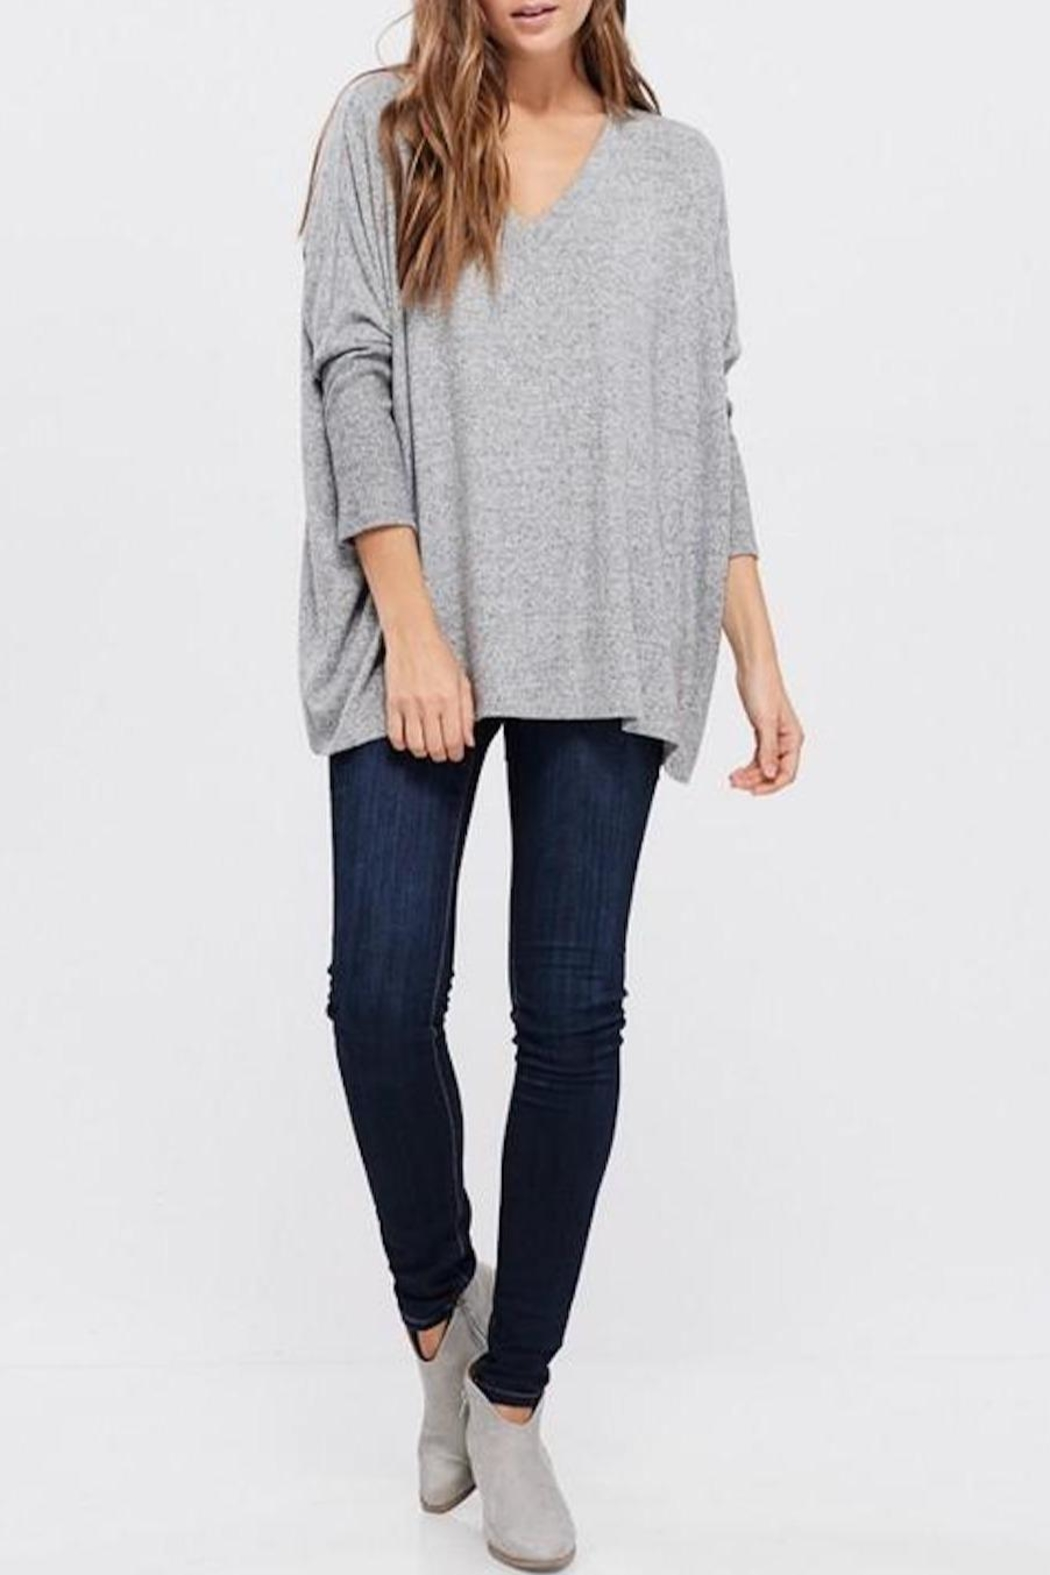 Cherish Dolman-Sleeve Knit Top - Side Cropped Image